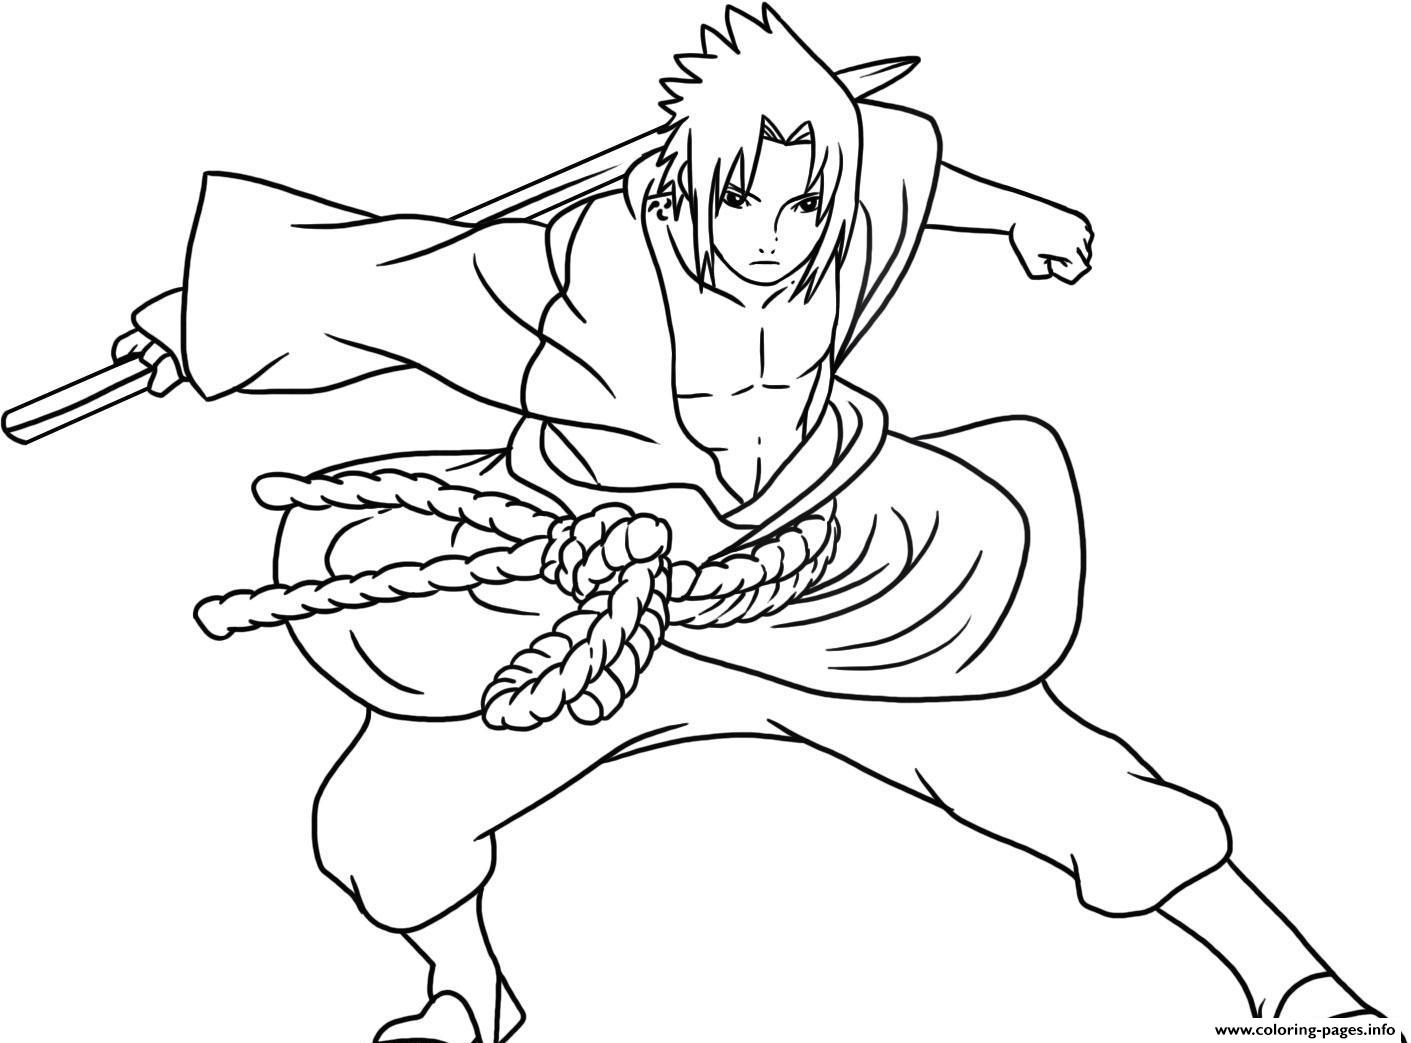 sasuke coloring pages Coloring Pages Anime Sasuke Of Naruto Shippudencb91 Coloring Pages  sasuke coloring pages